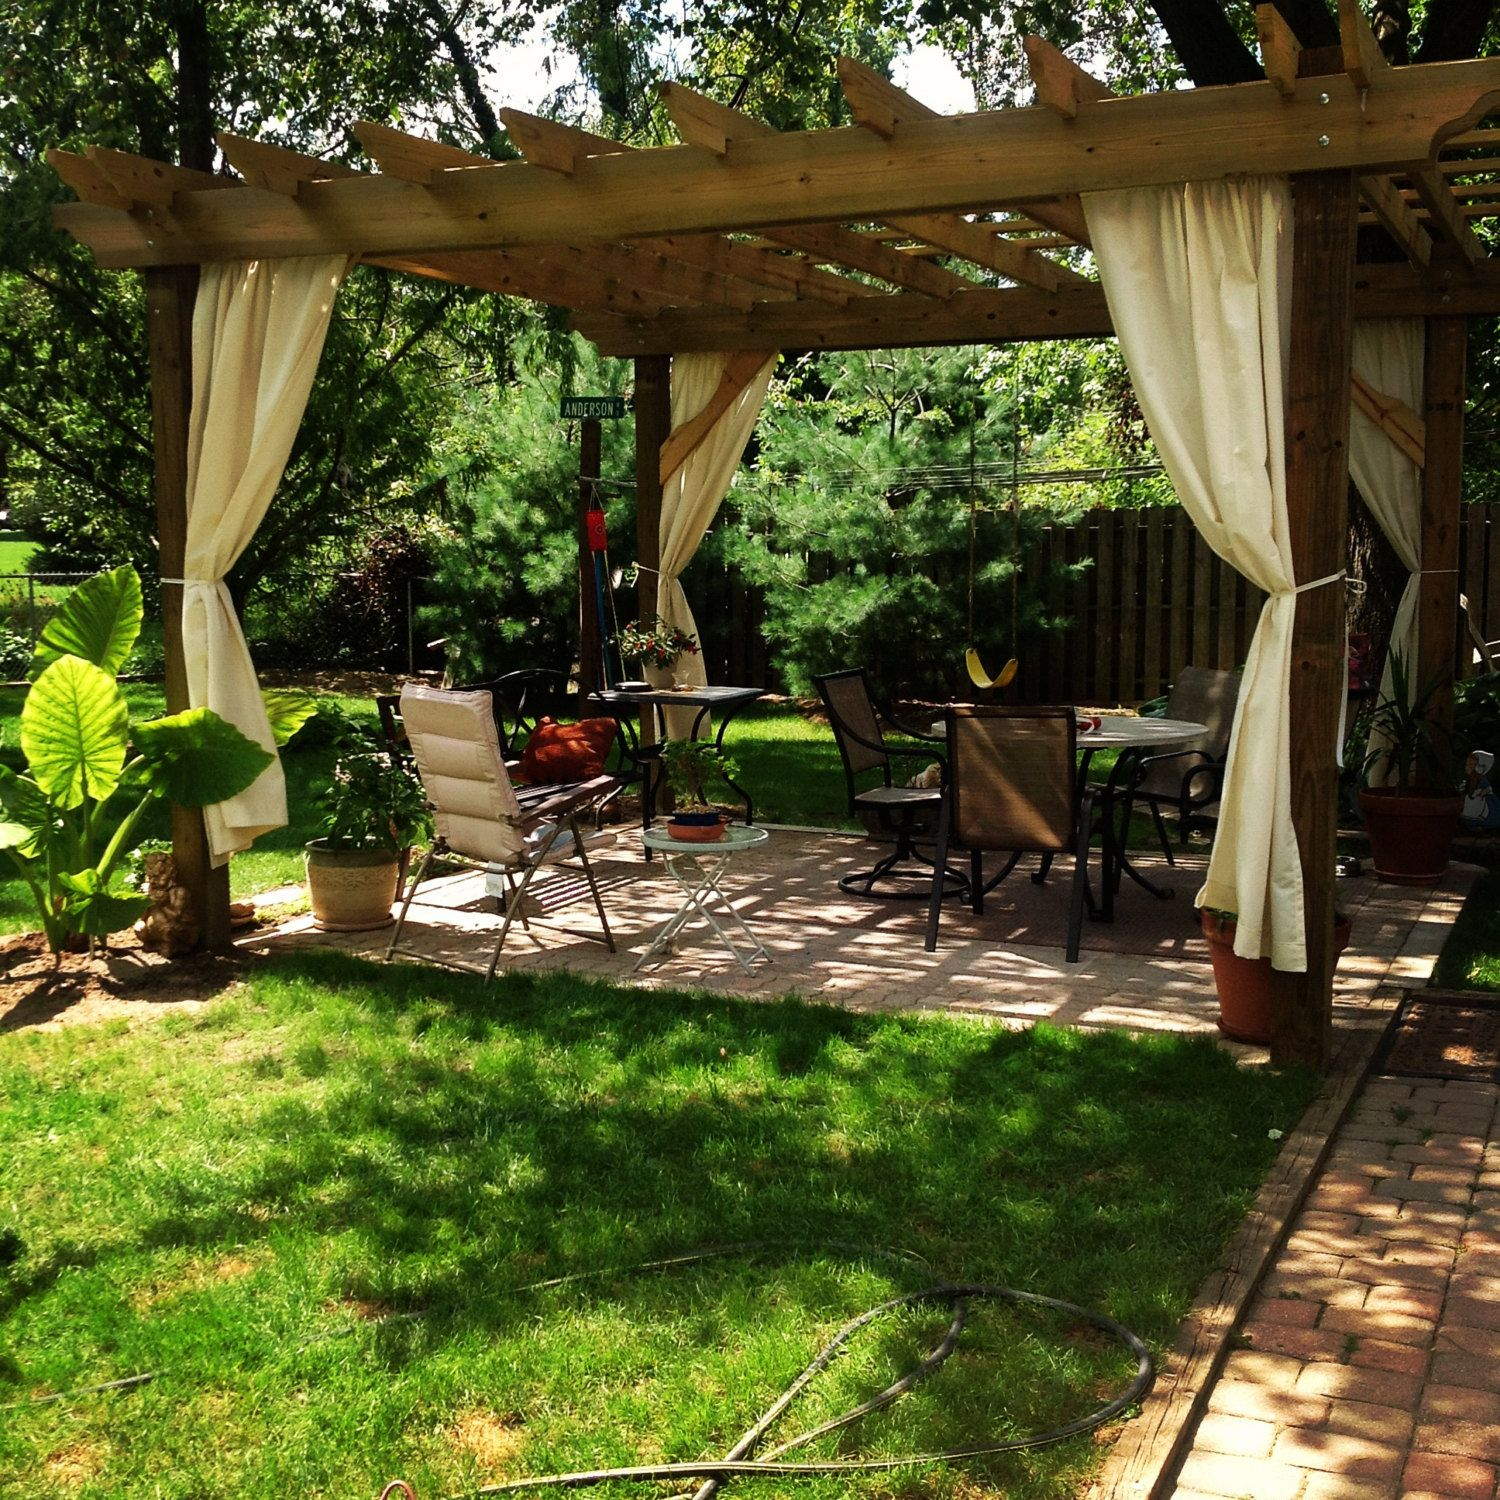 17 best images about yards and gardens on pinterest gardens patio and covered patios arbor - Arbor Design Ideas